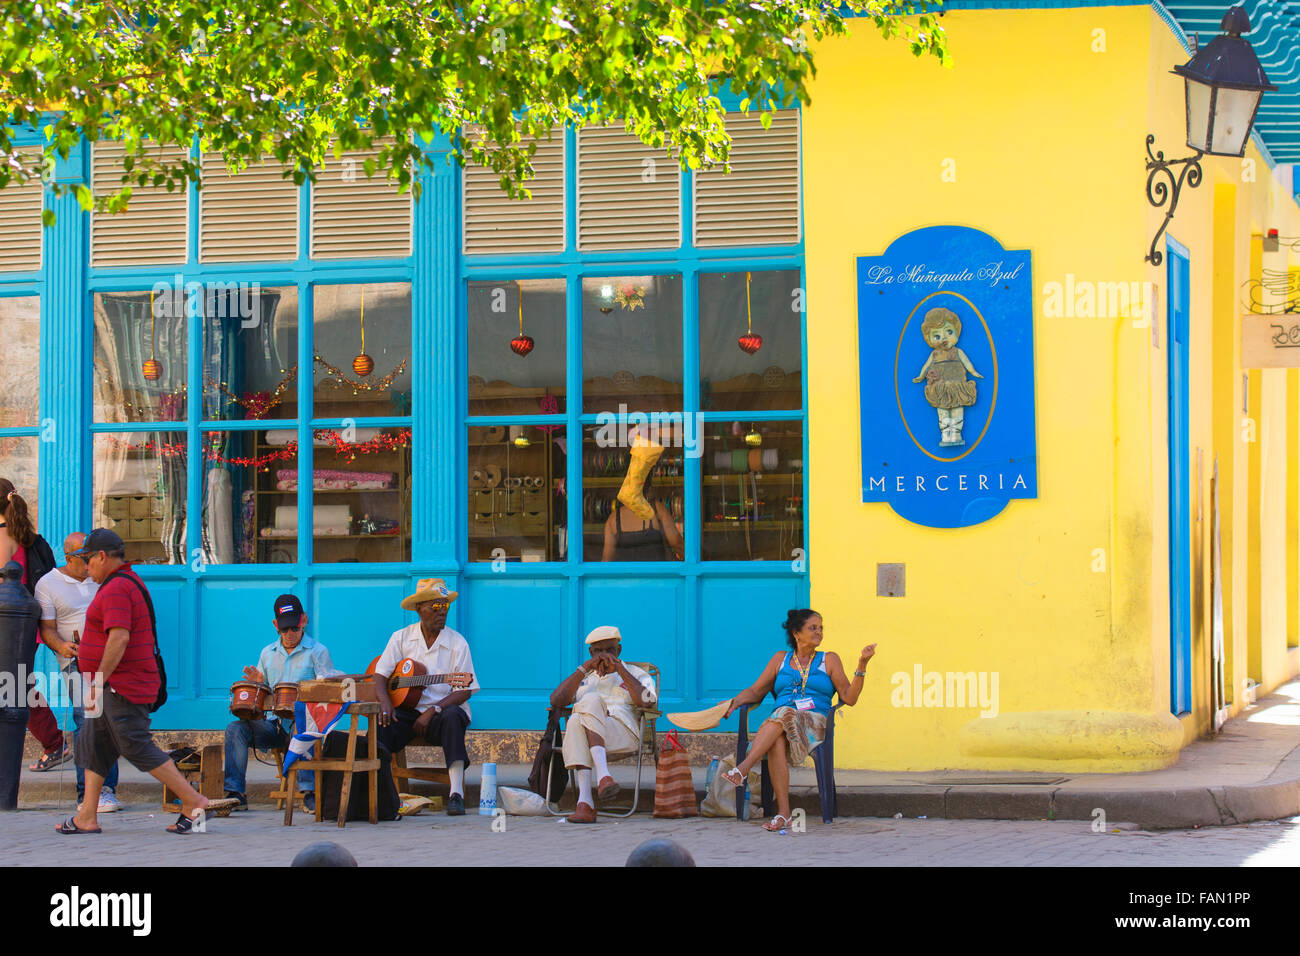 Outdoor Scene, Musicians sitting outside a shop, Havana, La Habana, Cuba - Stock Image